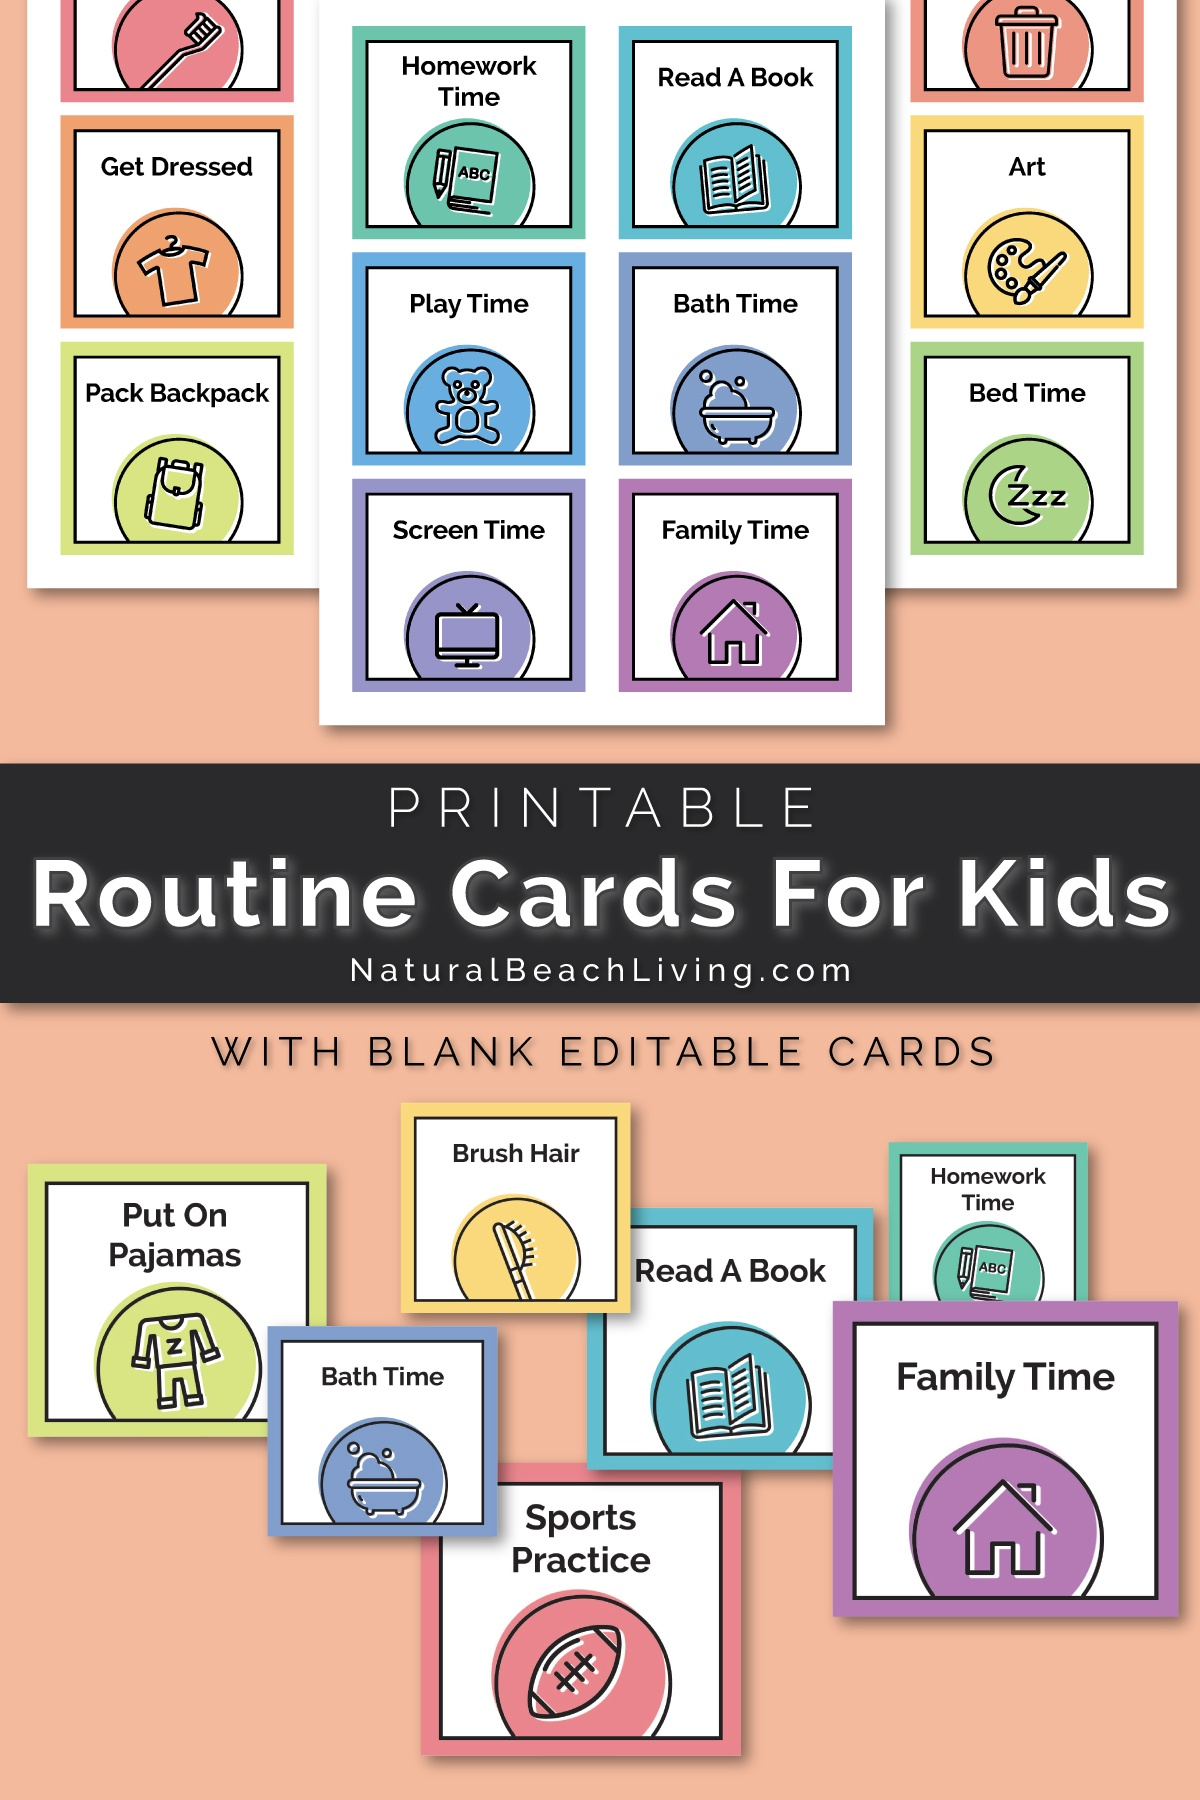 Visual Schedule - Free Printable Routine Cards - Natural Beach Living - Routine Cards Printable Free